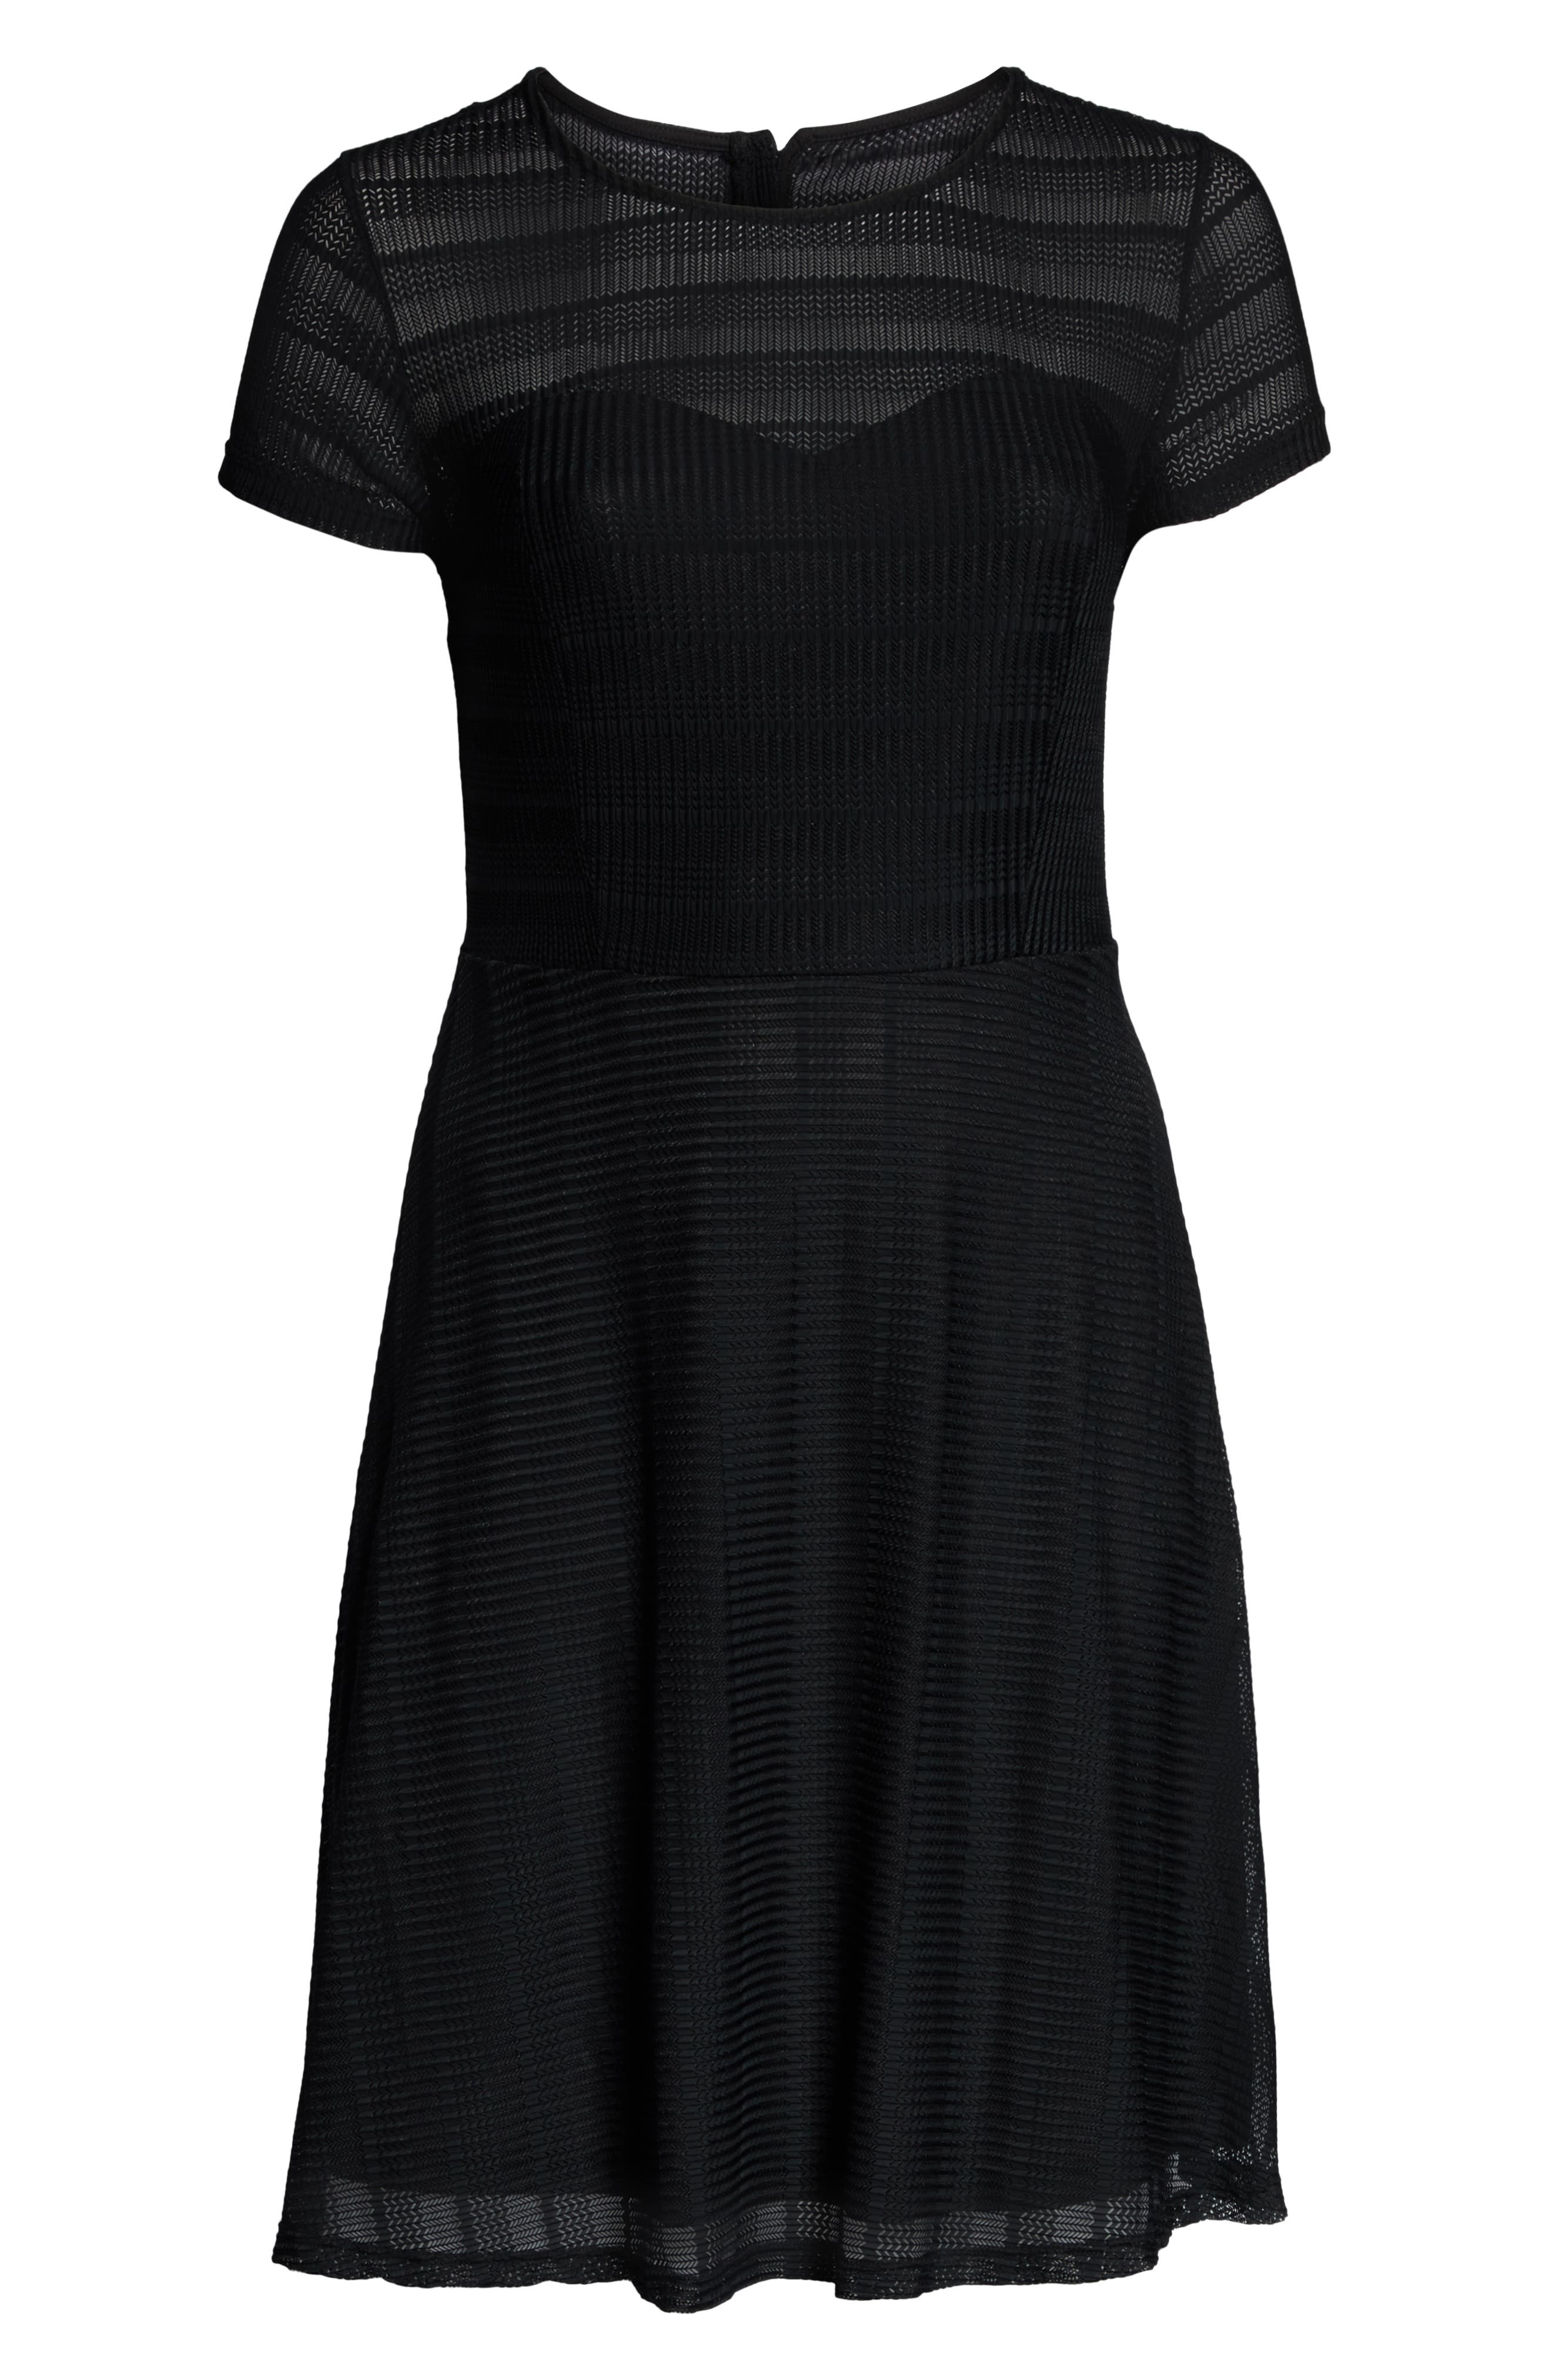 CITY CHIC, Textured Heart Dress, Alternate thumbnail 3, color, BLACK